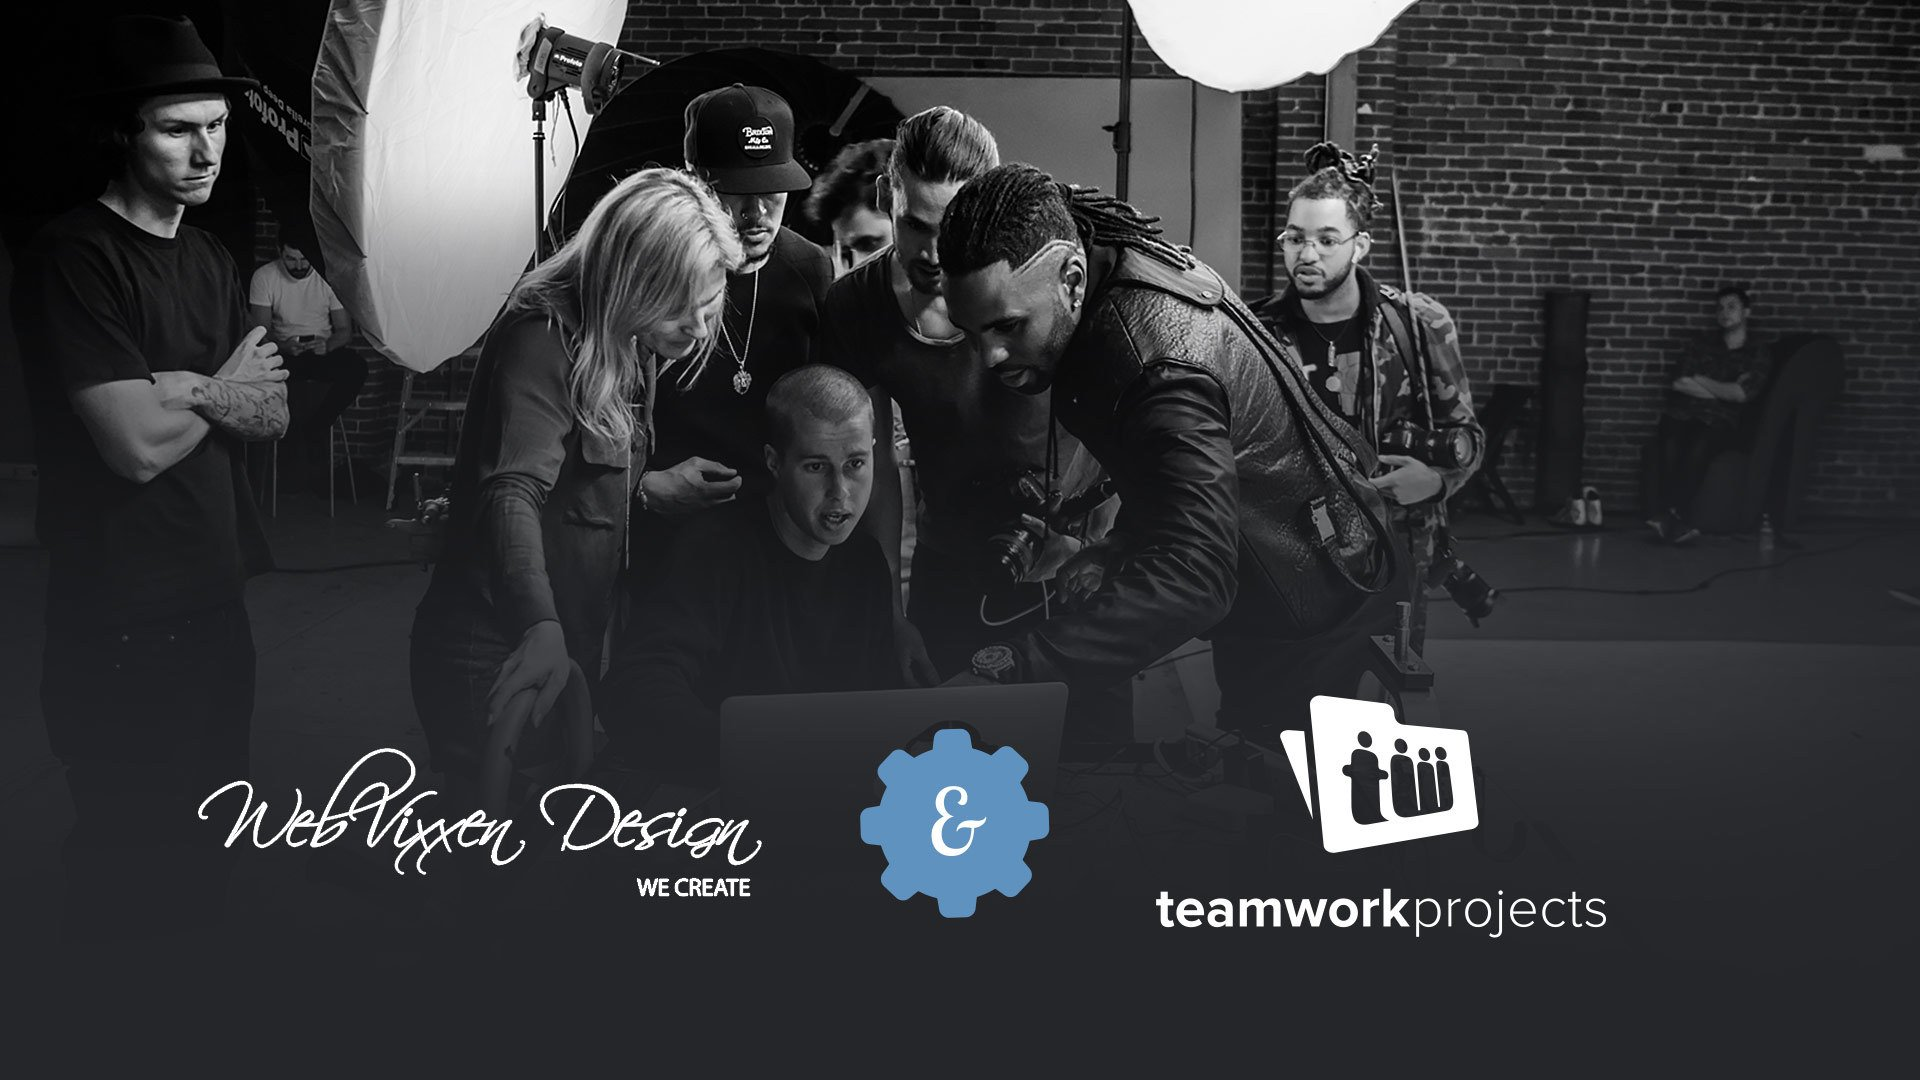 Using Teamwork Projects to Manage Creative People and Projects